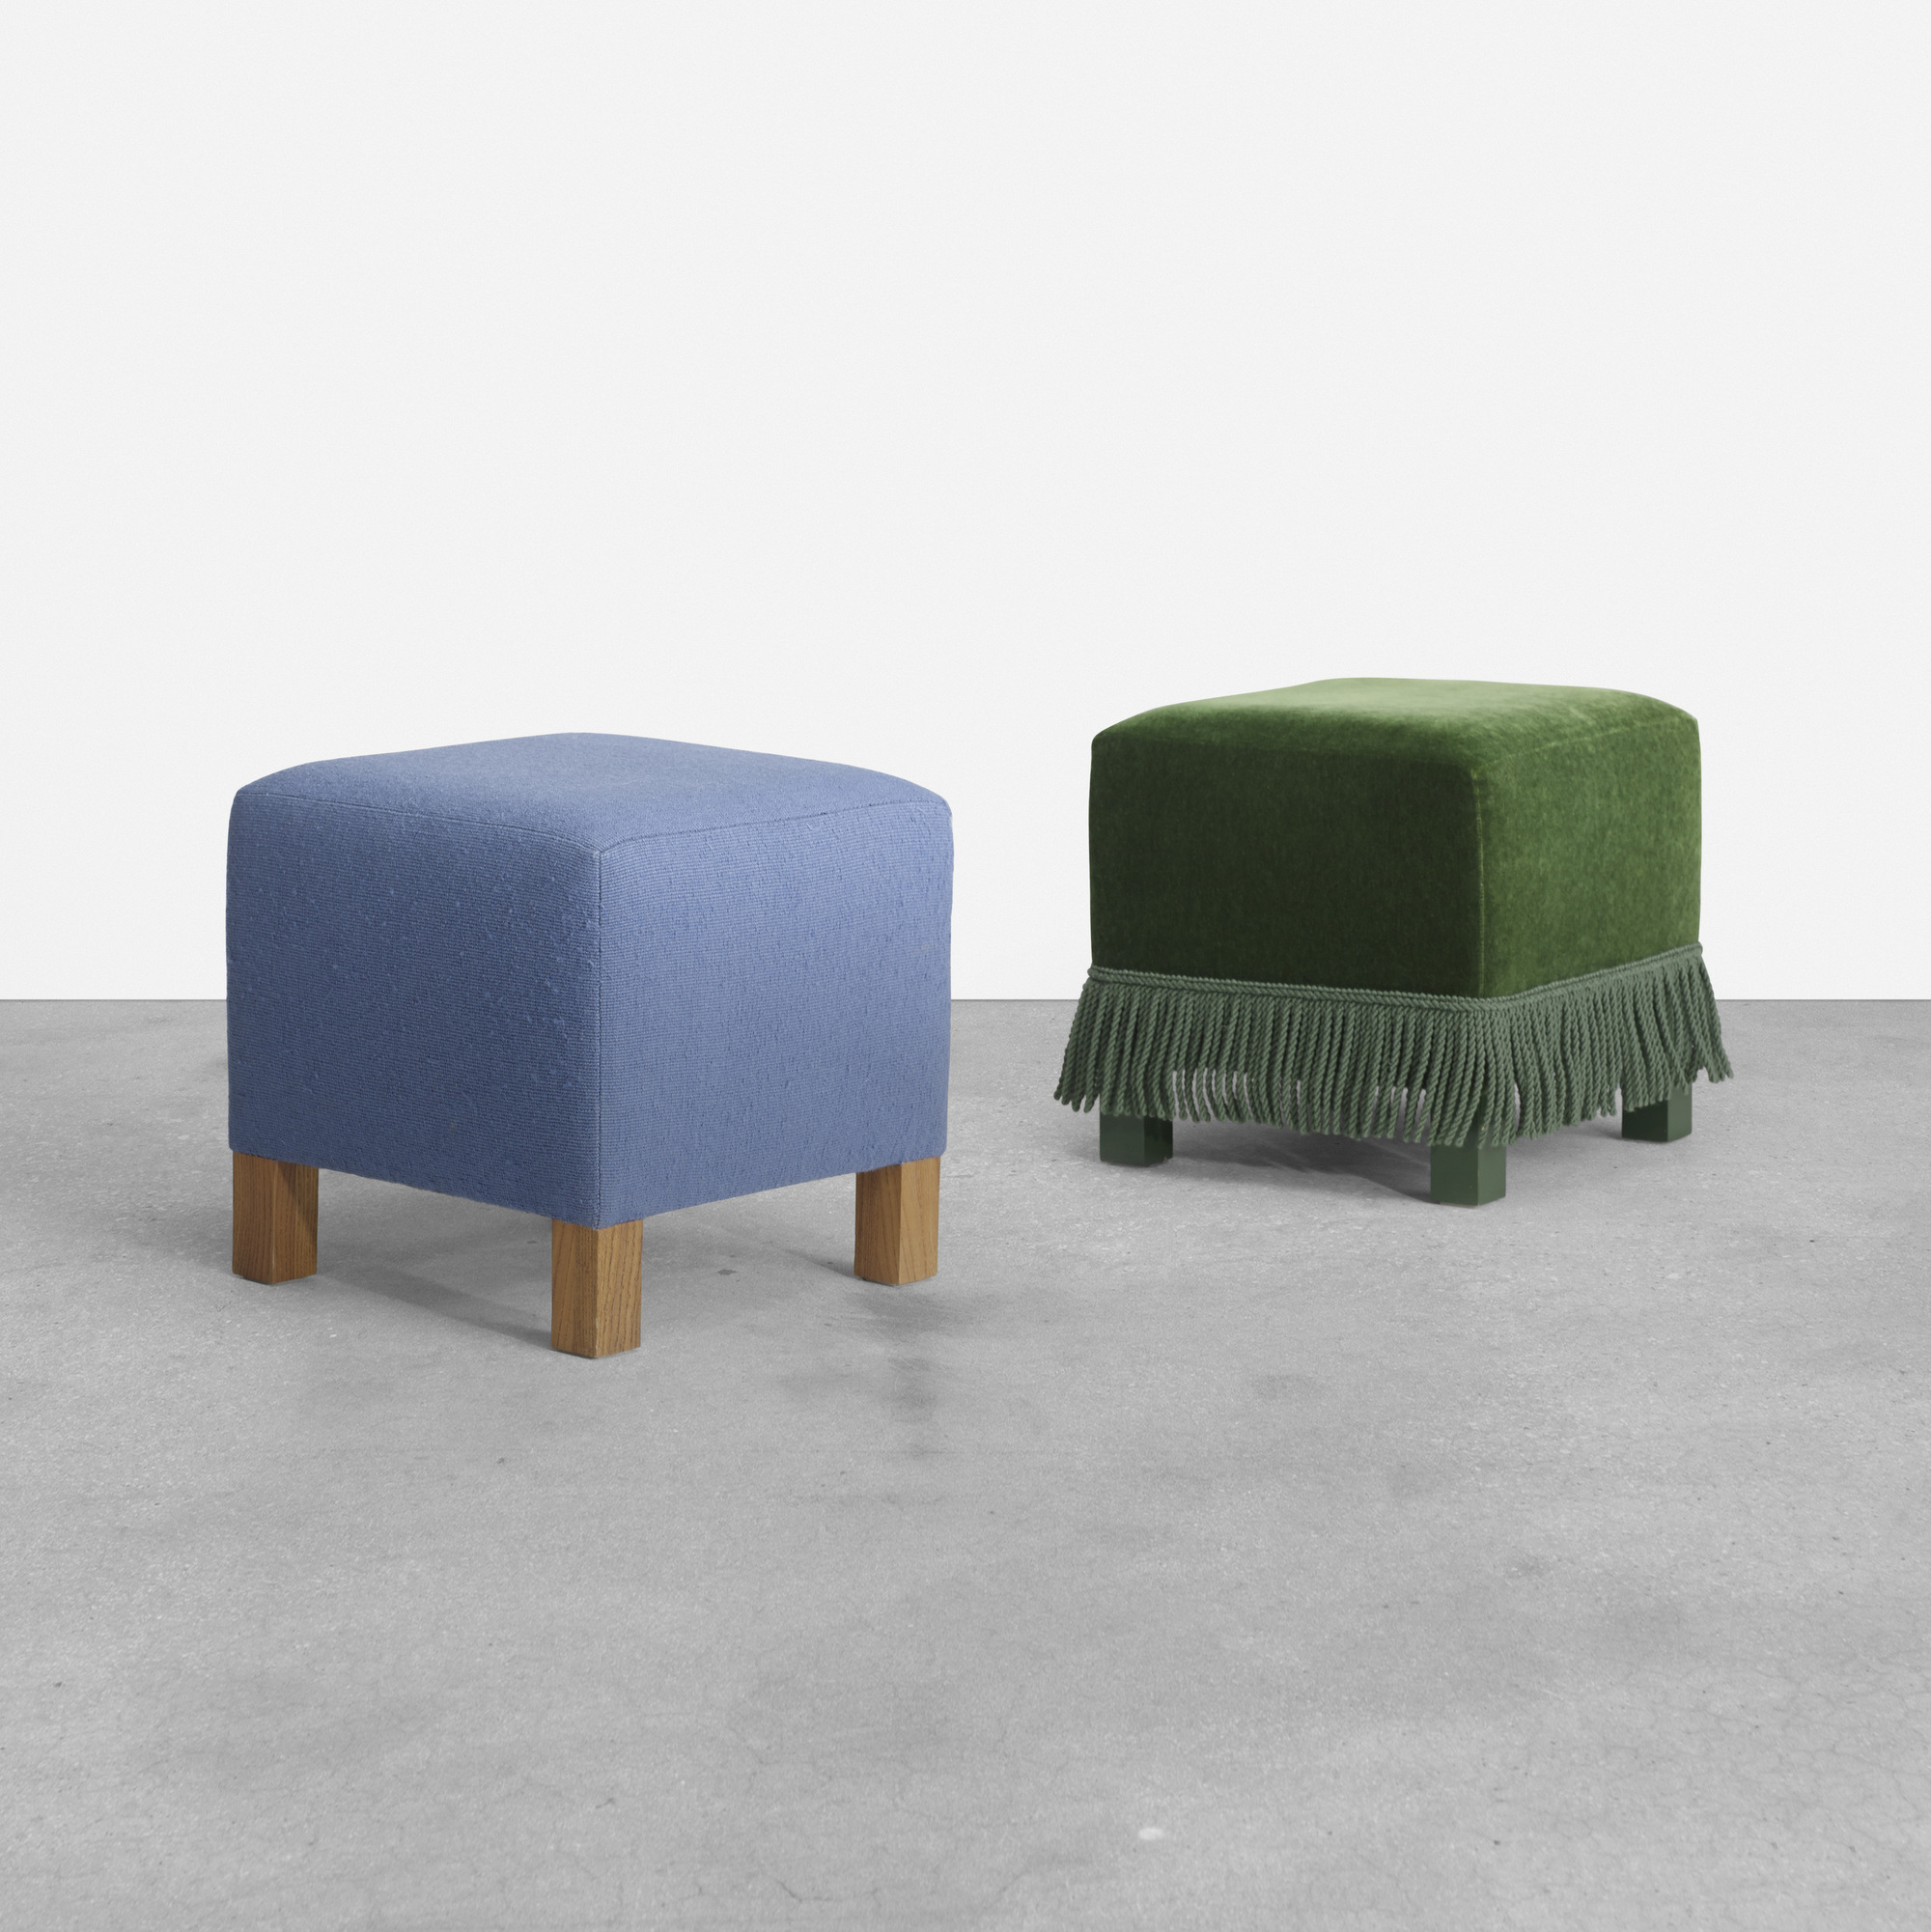 289: Roy McMakin / pair of ottomans for the Young residence, Chicago (1 of 2)